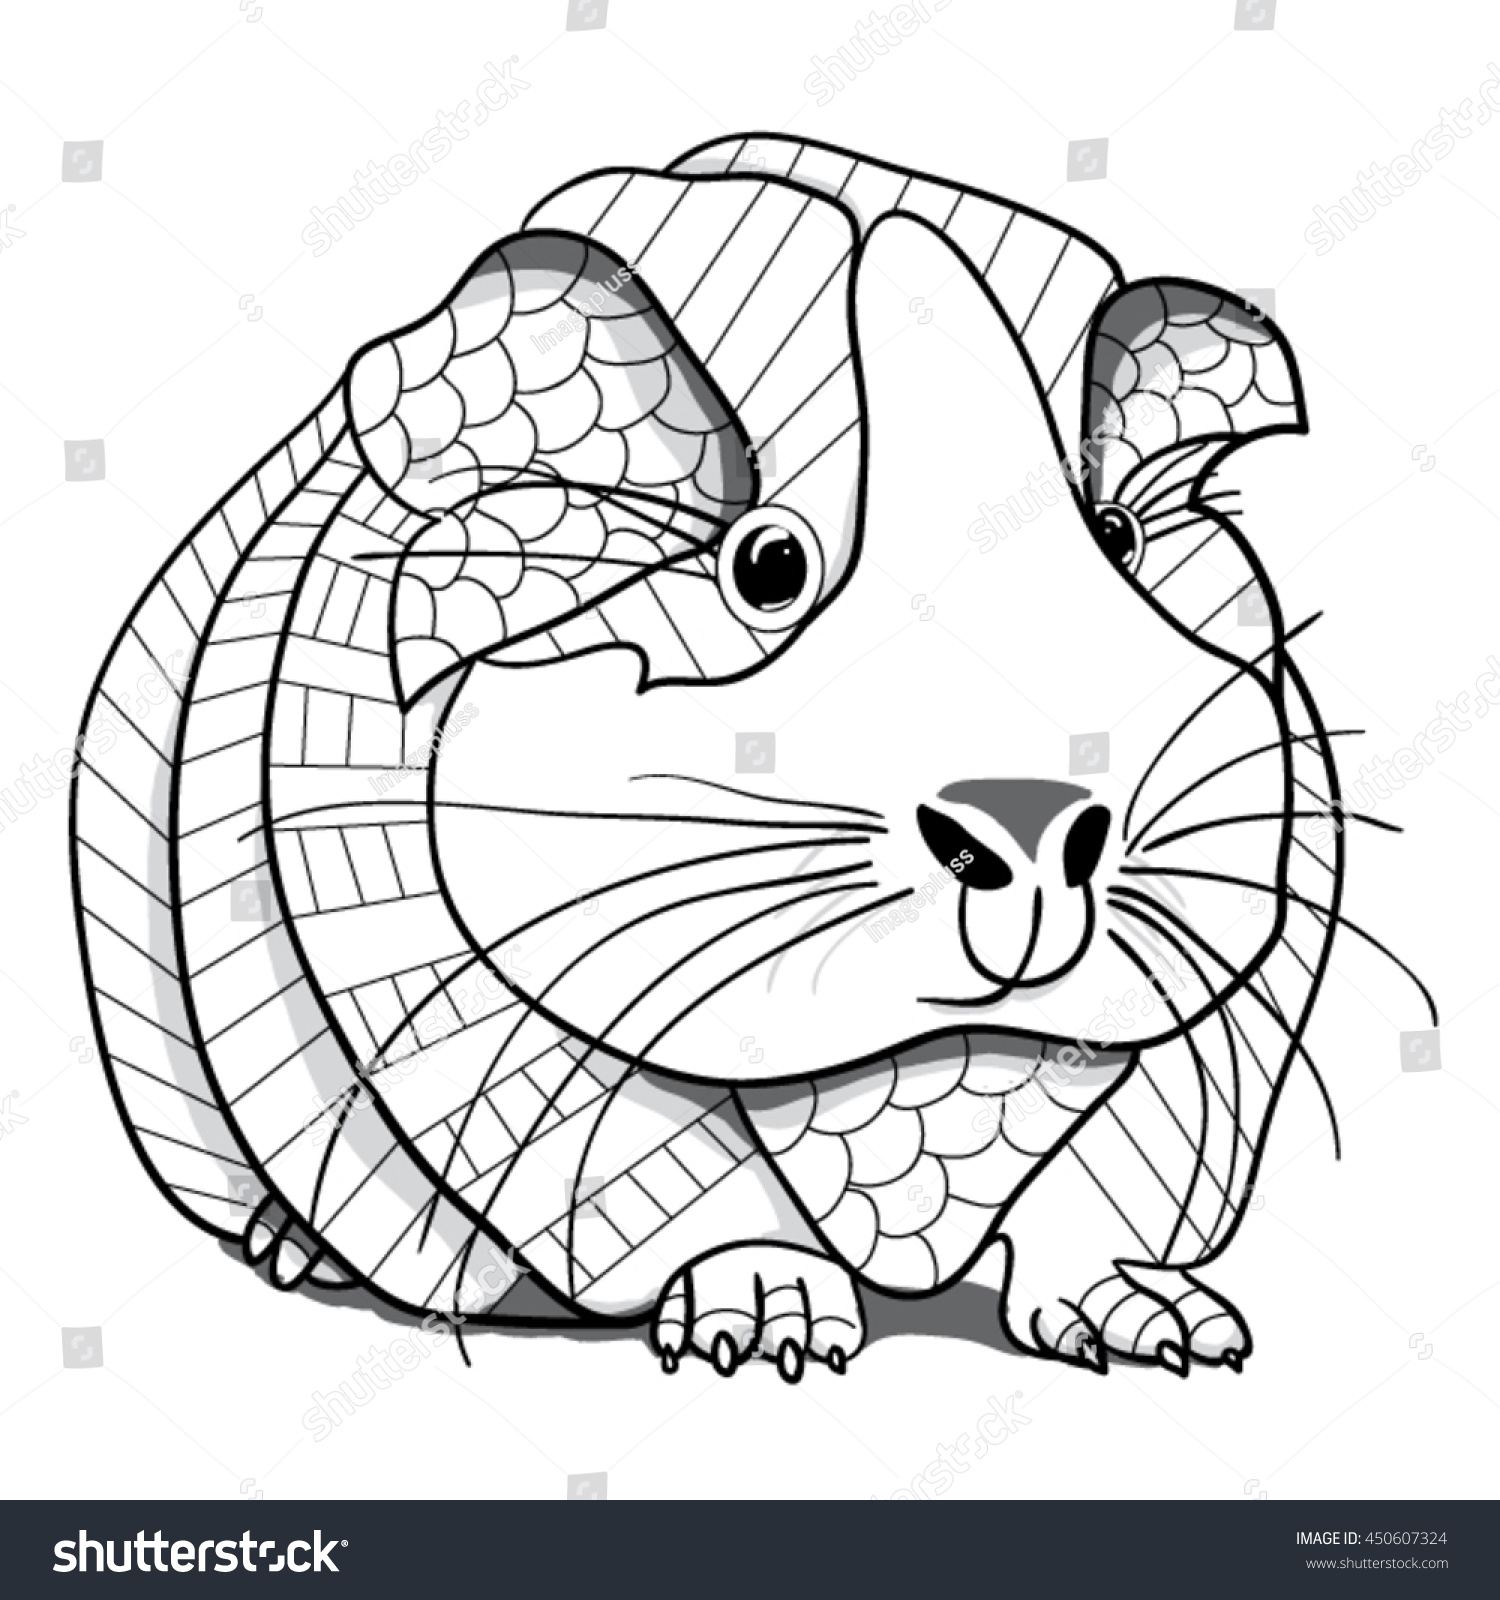 Guinea Pig Coloring Page Stock Vector 450607324 Shutterstock